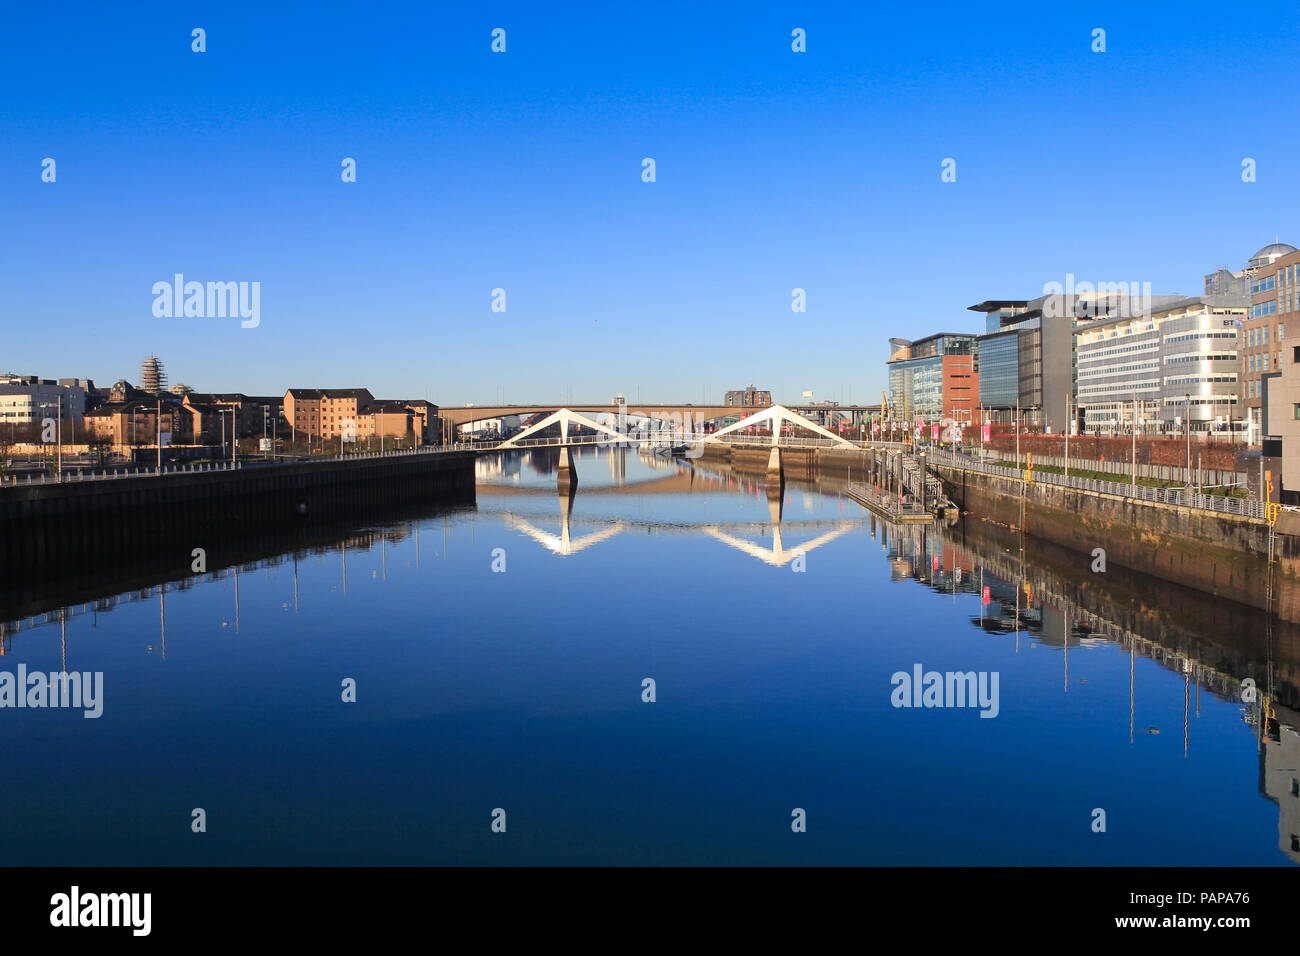 Clyde River Glasgow - Stock Image